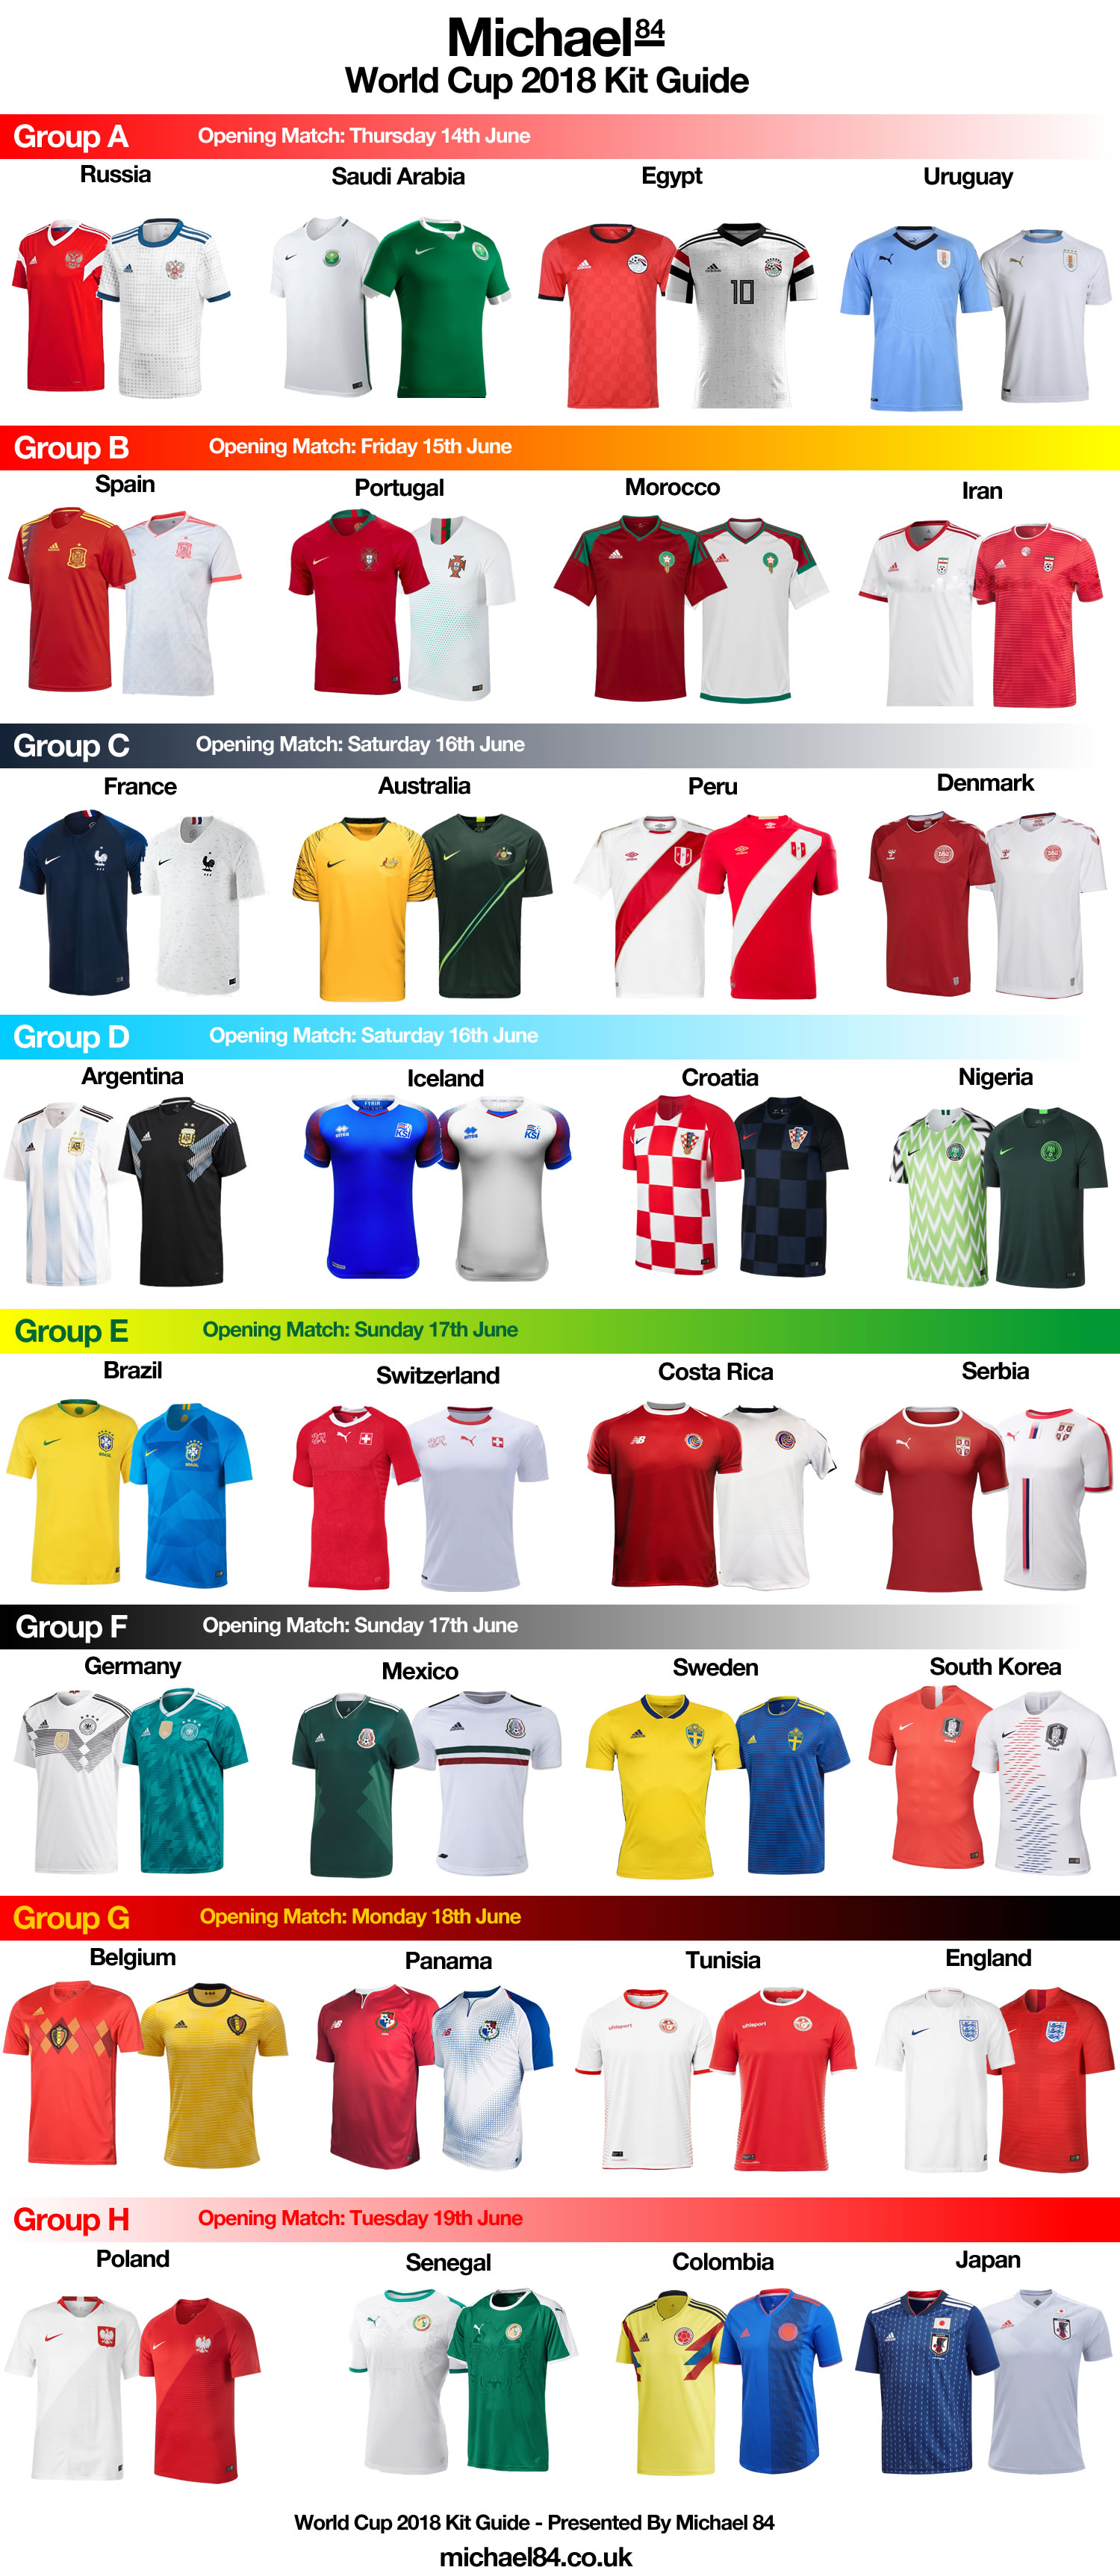 Every 2018 World Cup Kit - Home And Away Shirts